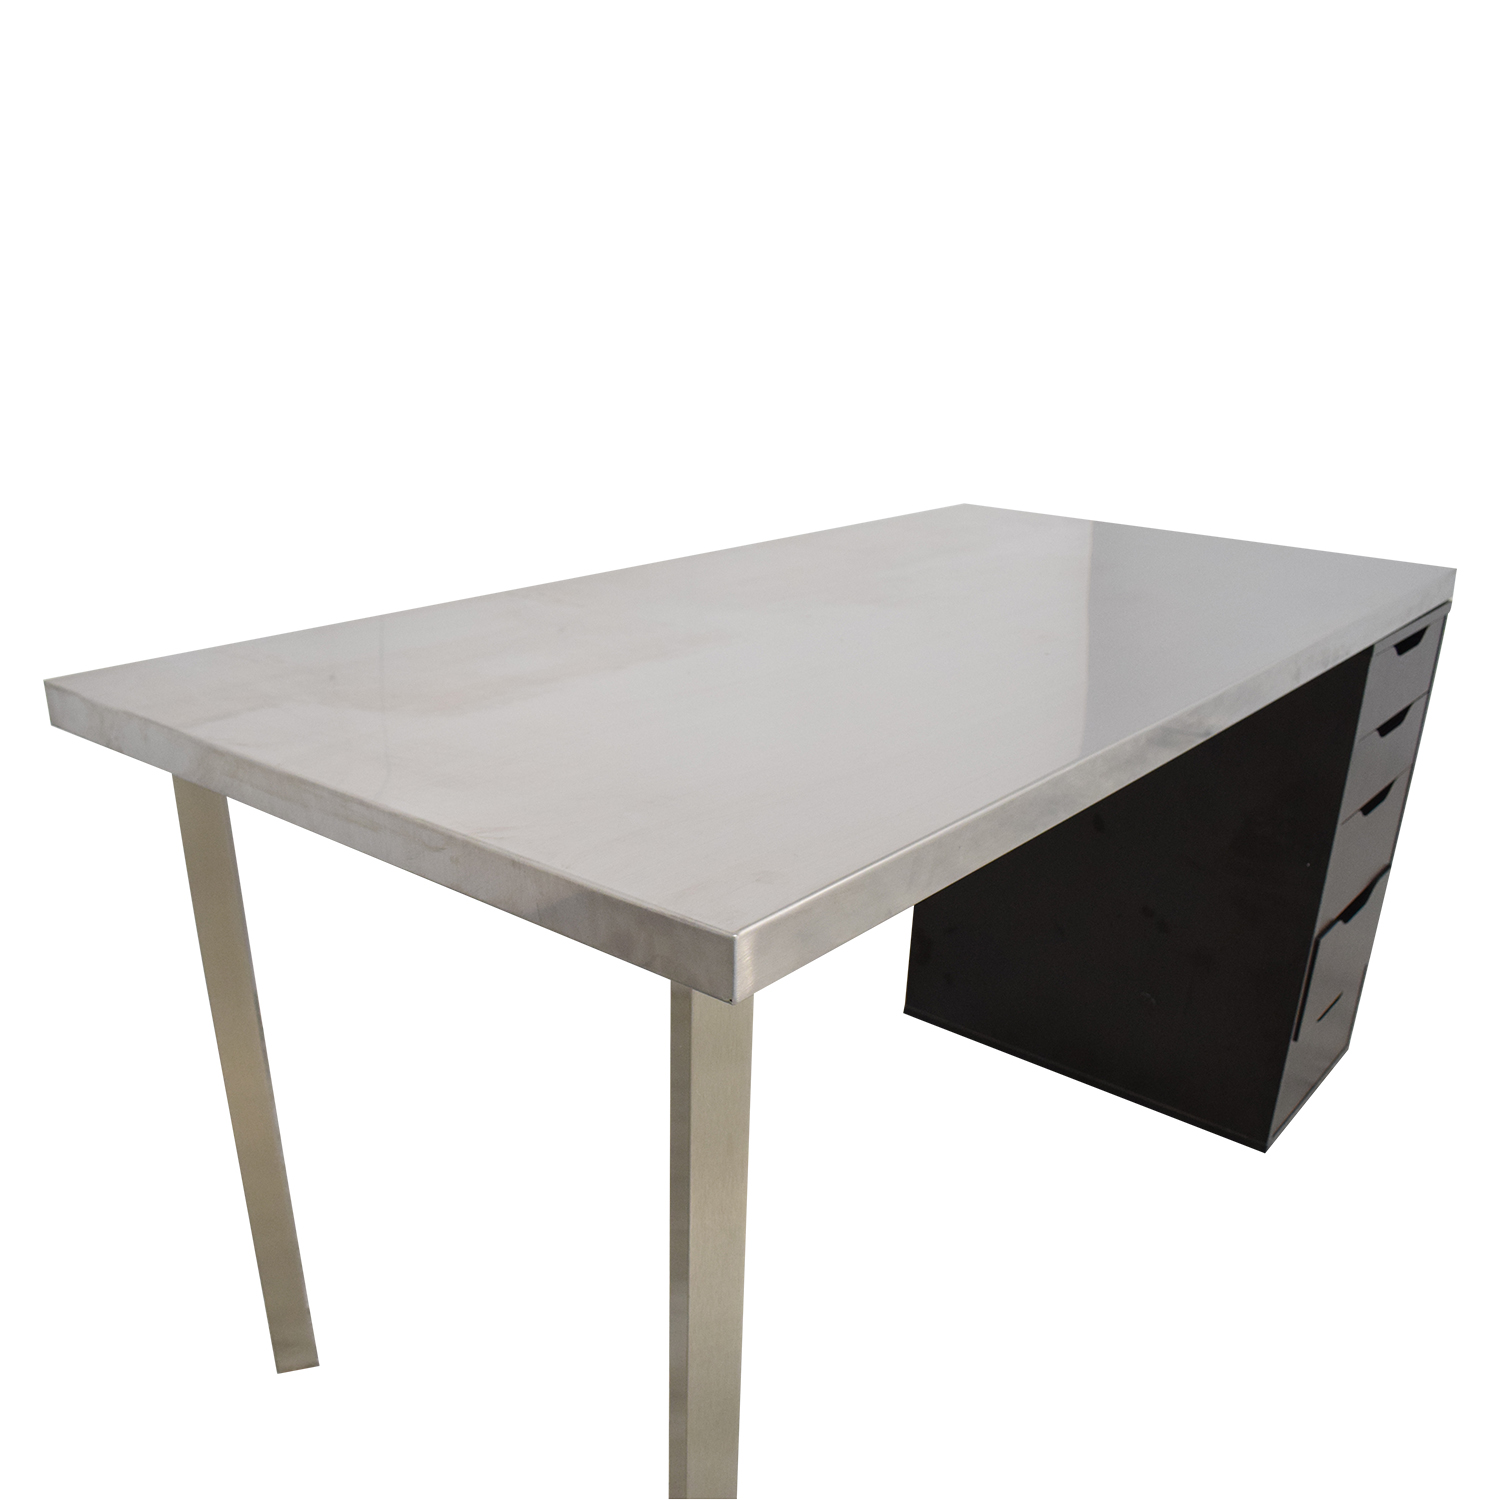 IKEA IKEA Sanfrid Stainless Steel Industrial Desk nyc